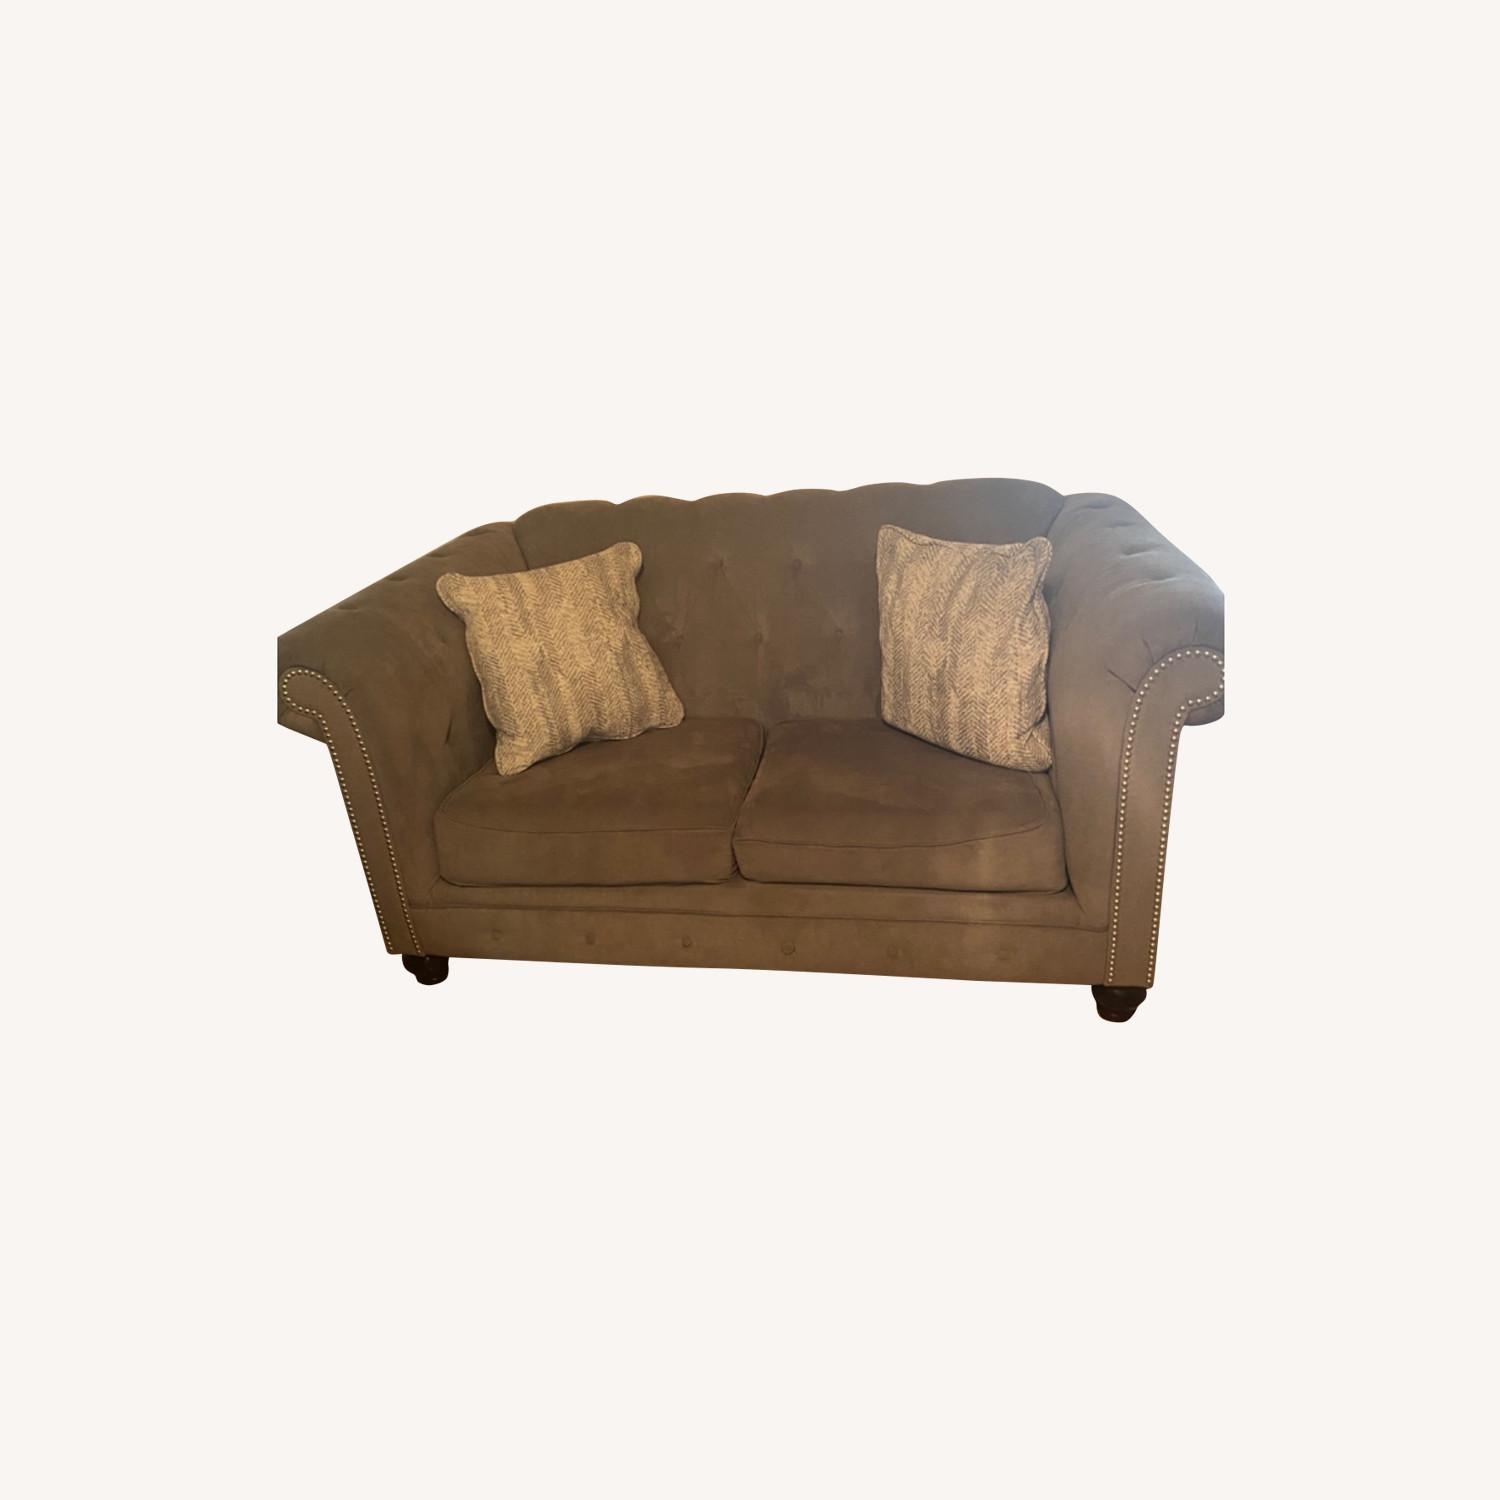 Ashley Furniture Grey Couches - image-6